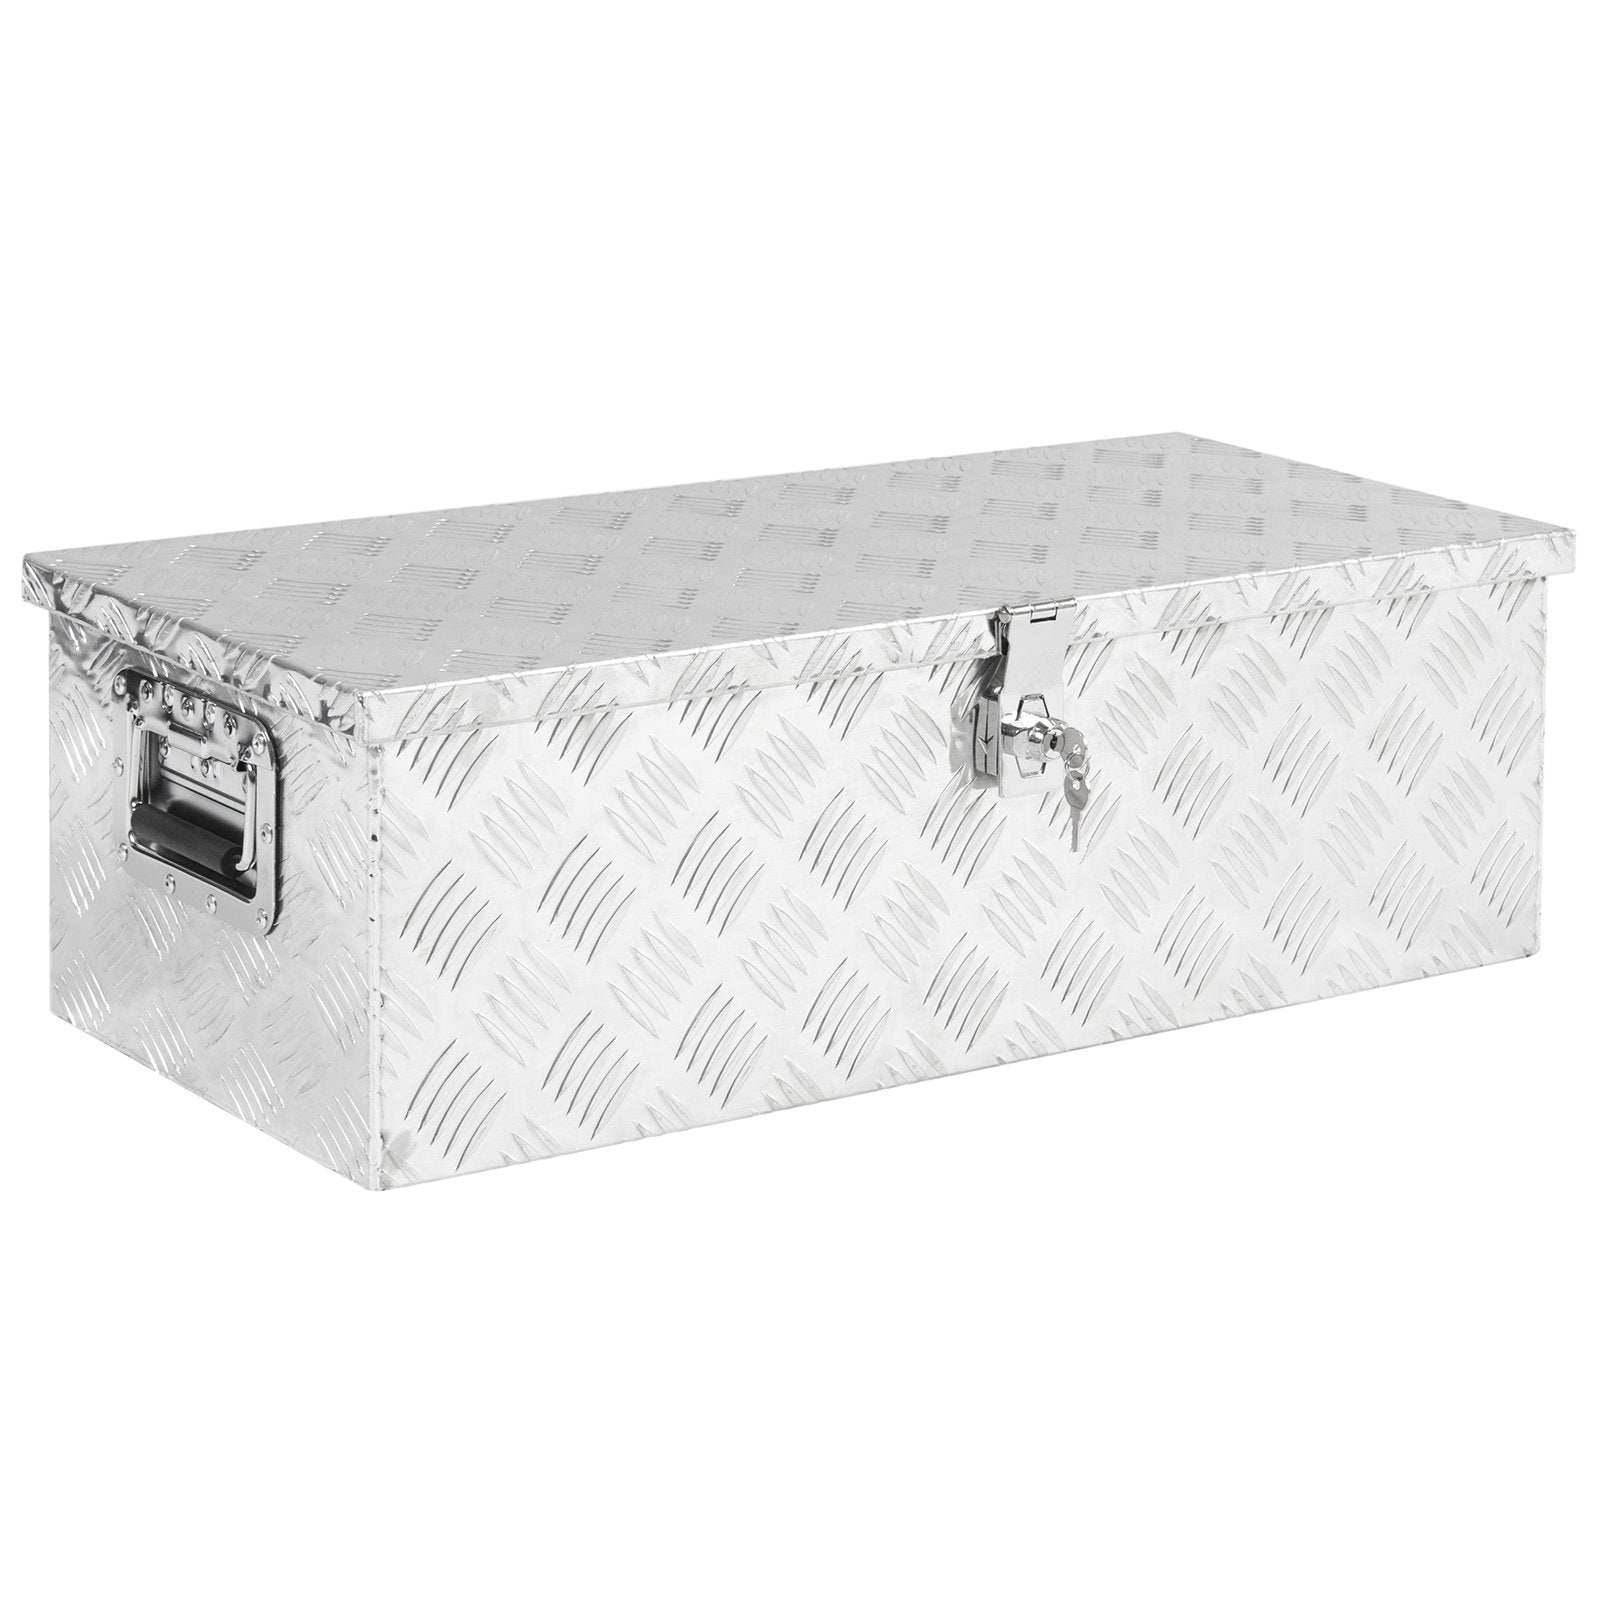 30in Aluminum Tool Box - Silver